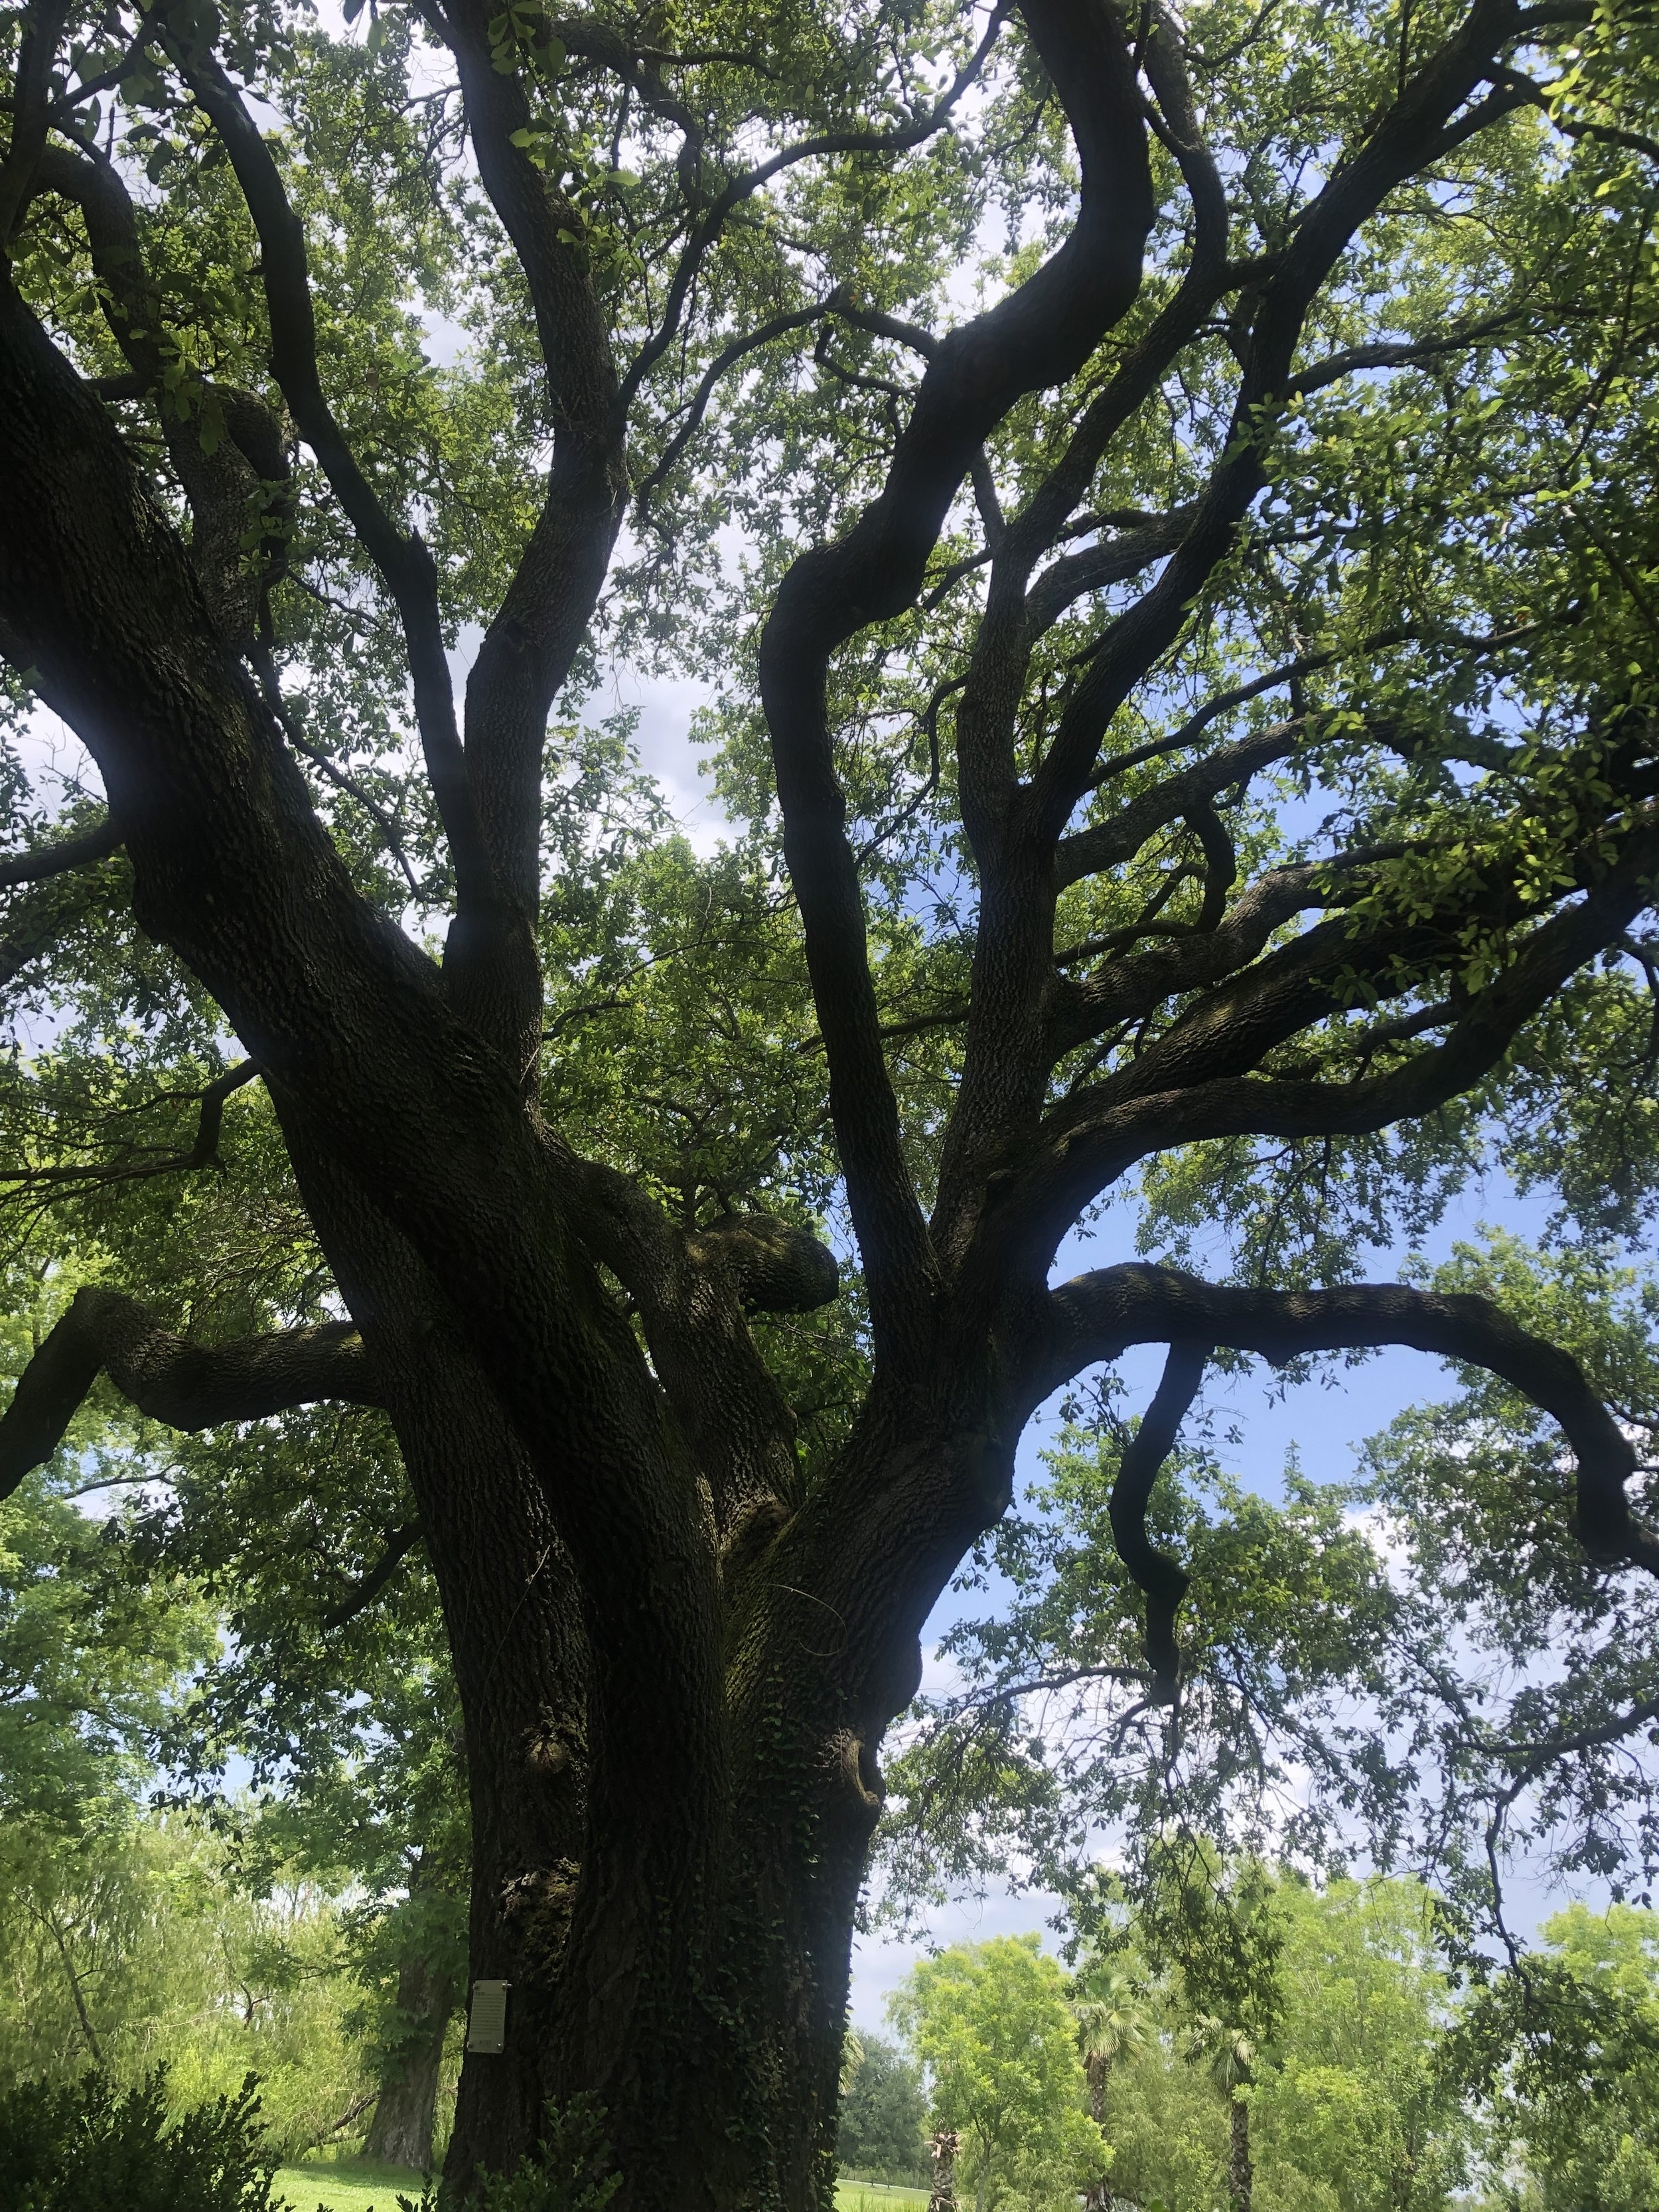 A single live-oak tree…